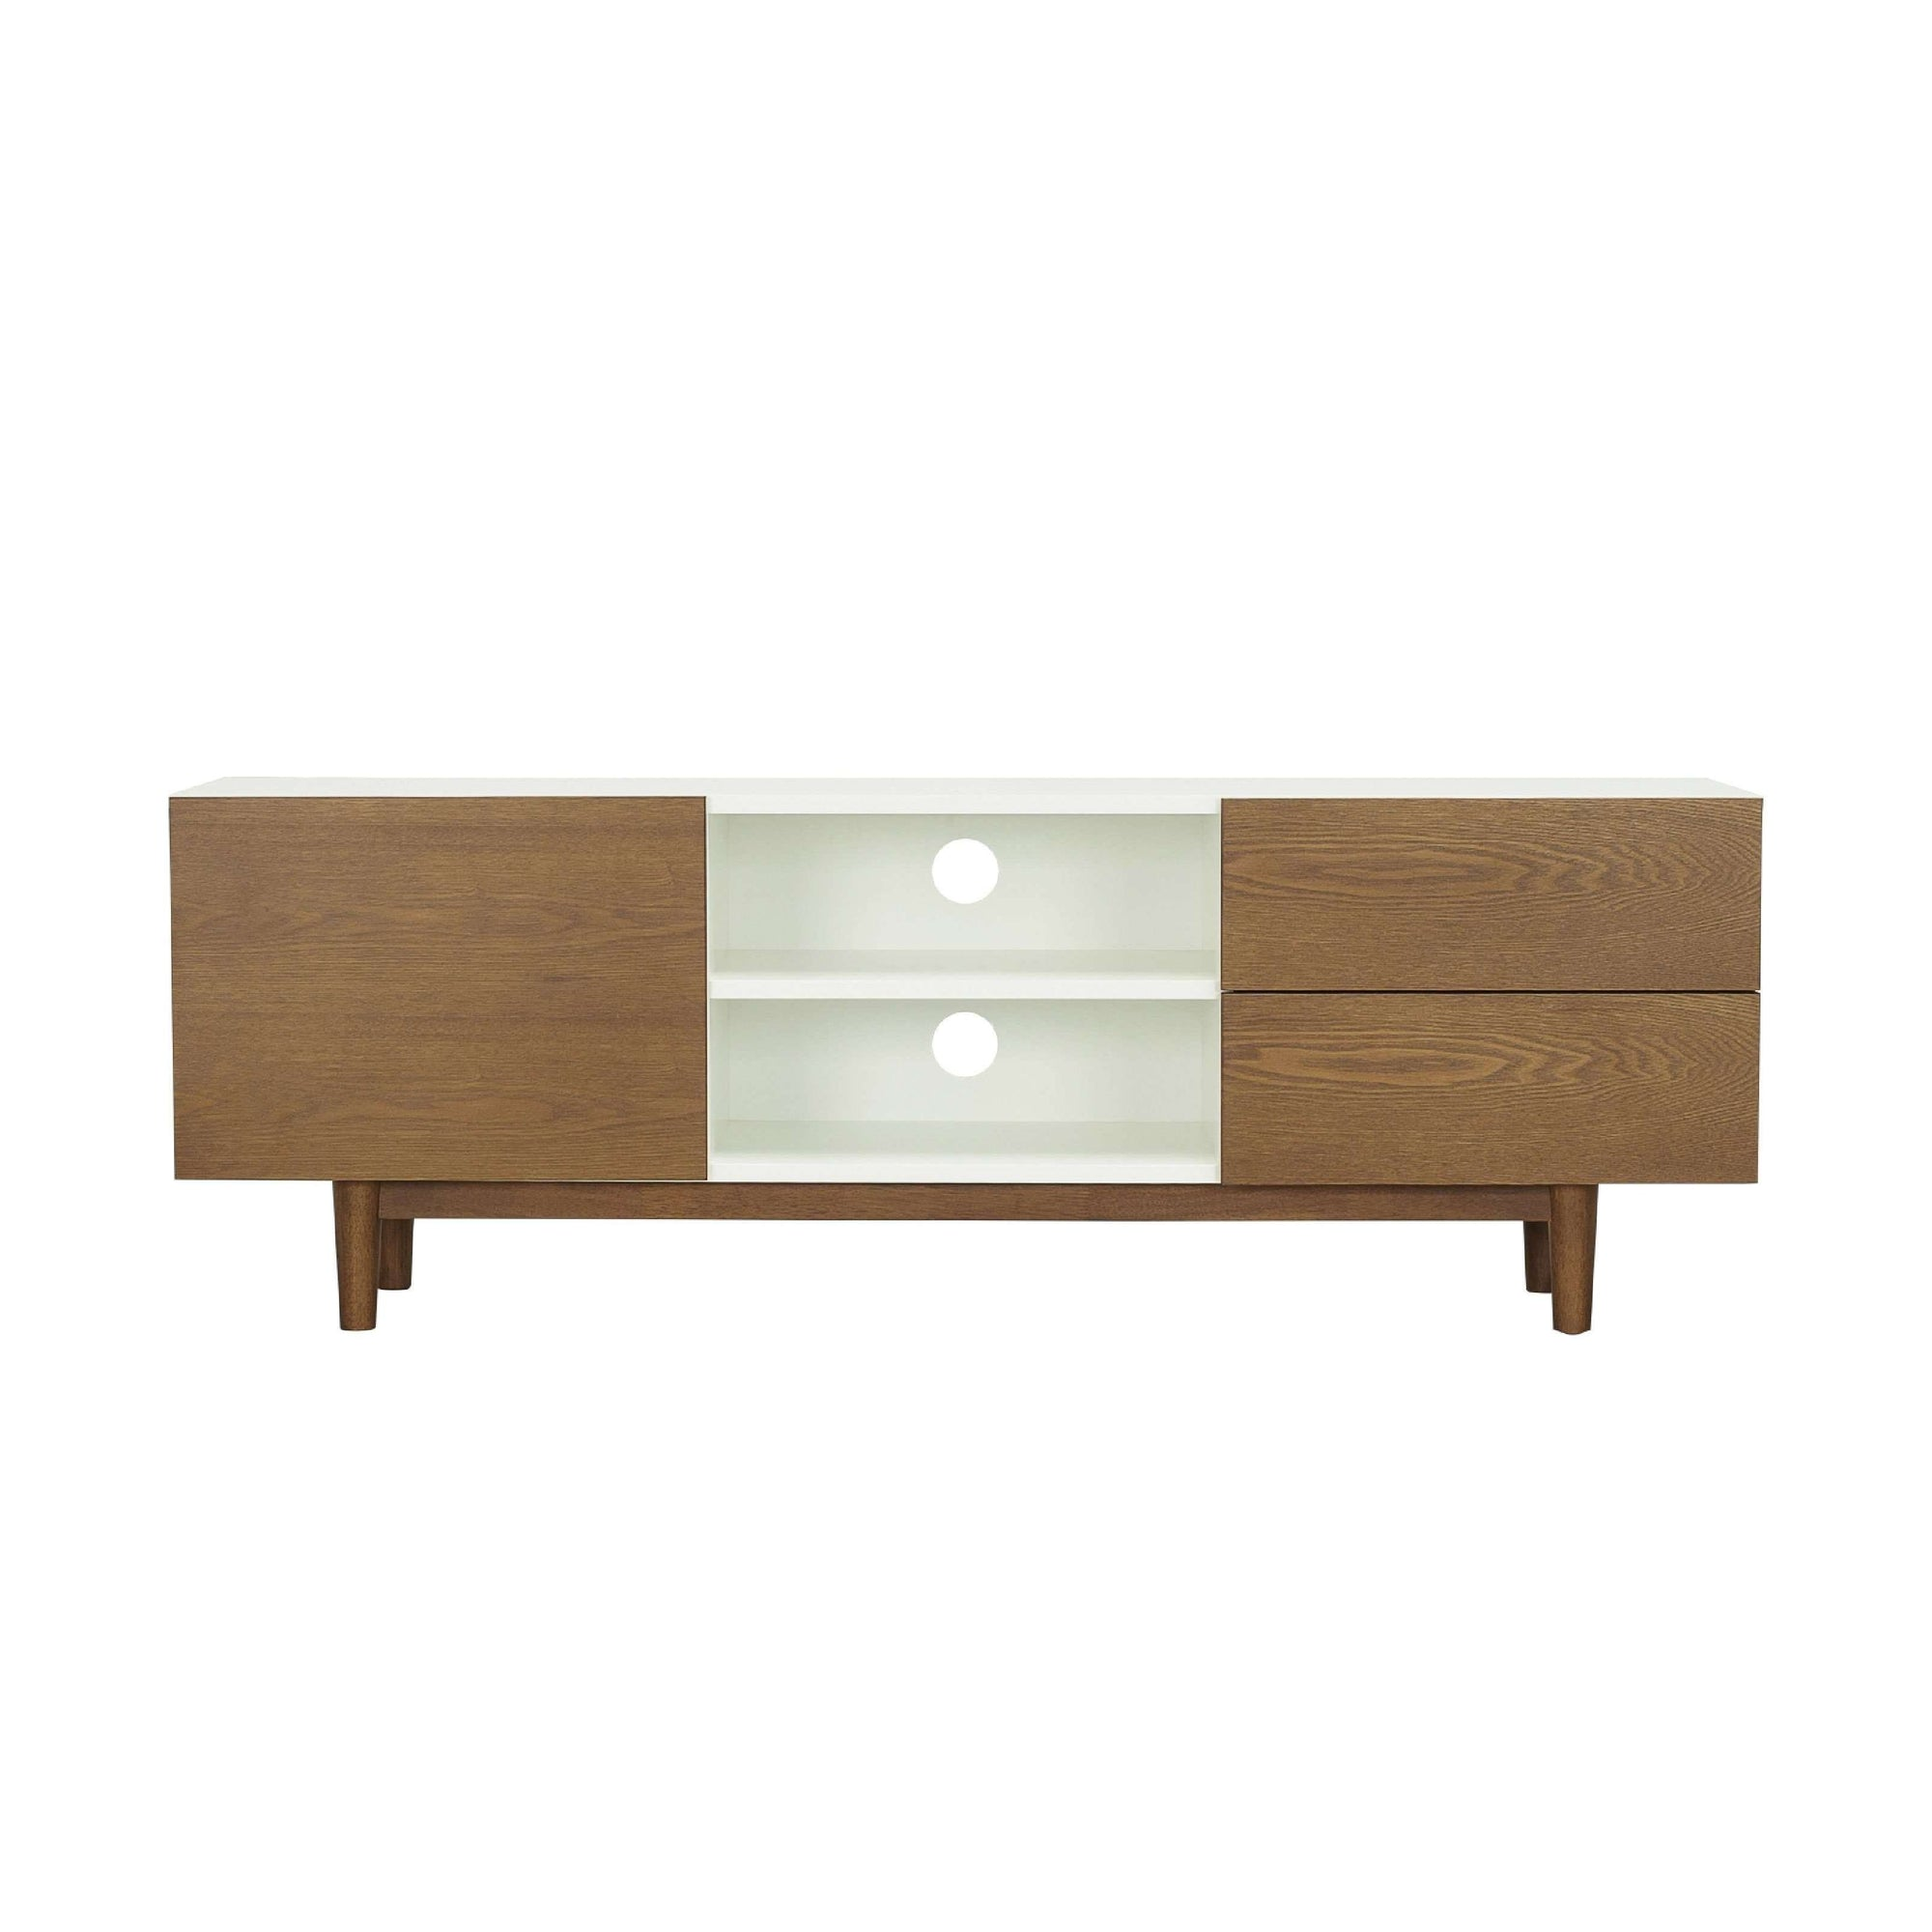 POTTER TV Cabinet On Cocoa Colour Leg, White Lacquered Body And Cocoa Colour Door